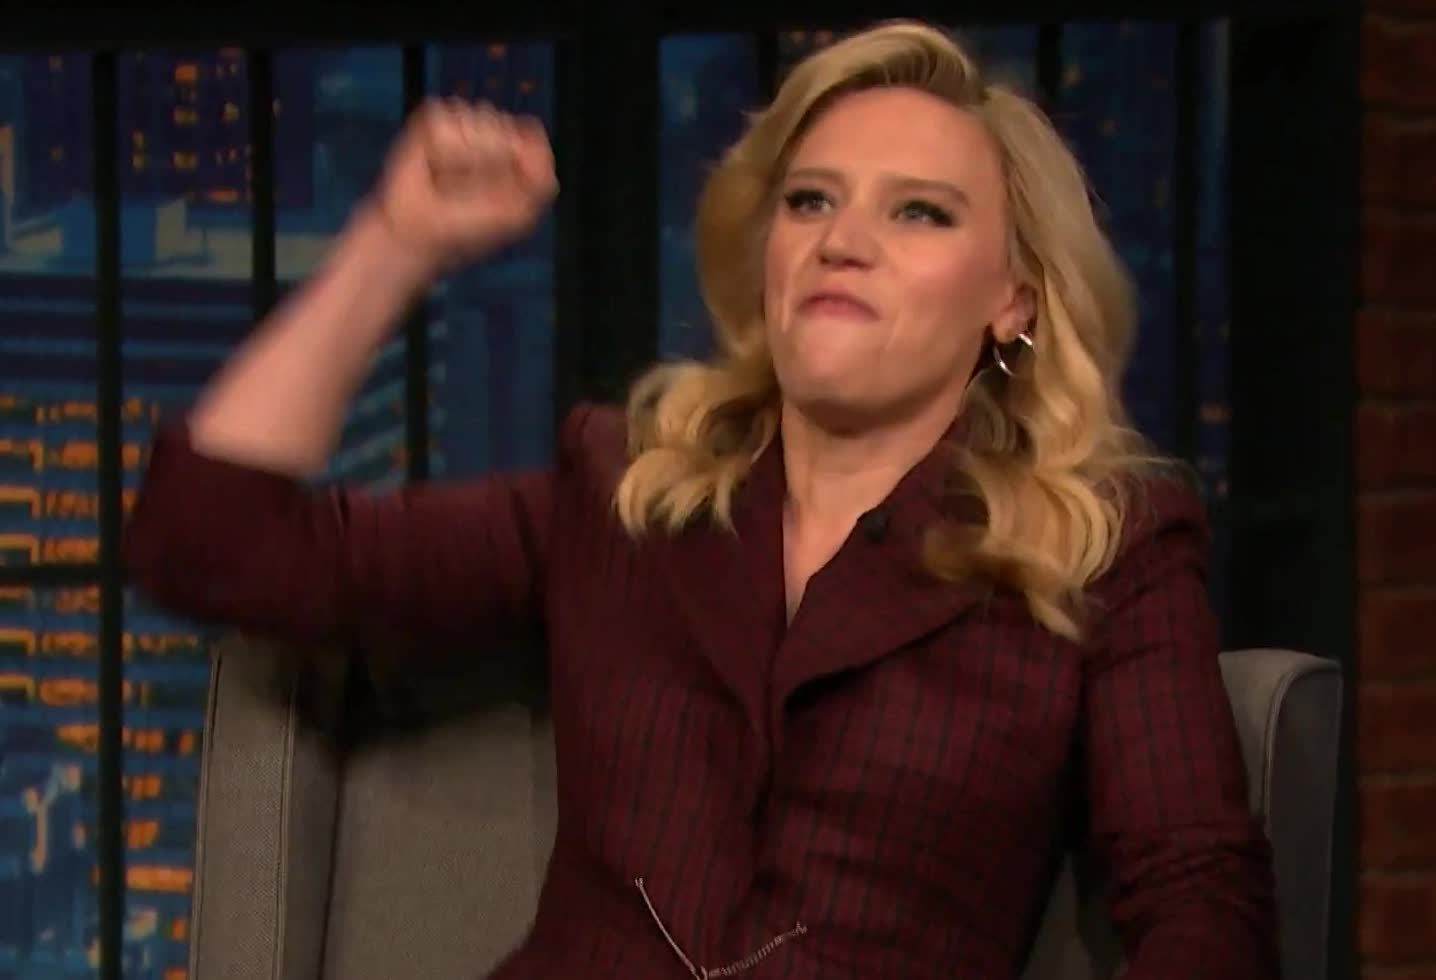 amazing, awesome, best, celebrate, cheer, debate, democratic, do, excited, fight, impersonate, it, kate, marianne, mckinnon, seth, williamson, wow, yes, Kate McKinnon is Marianne Williamson GIFs